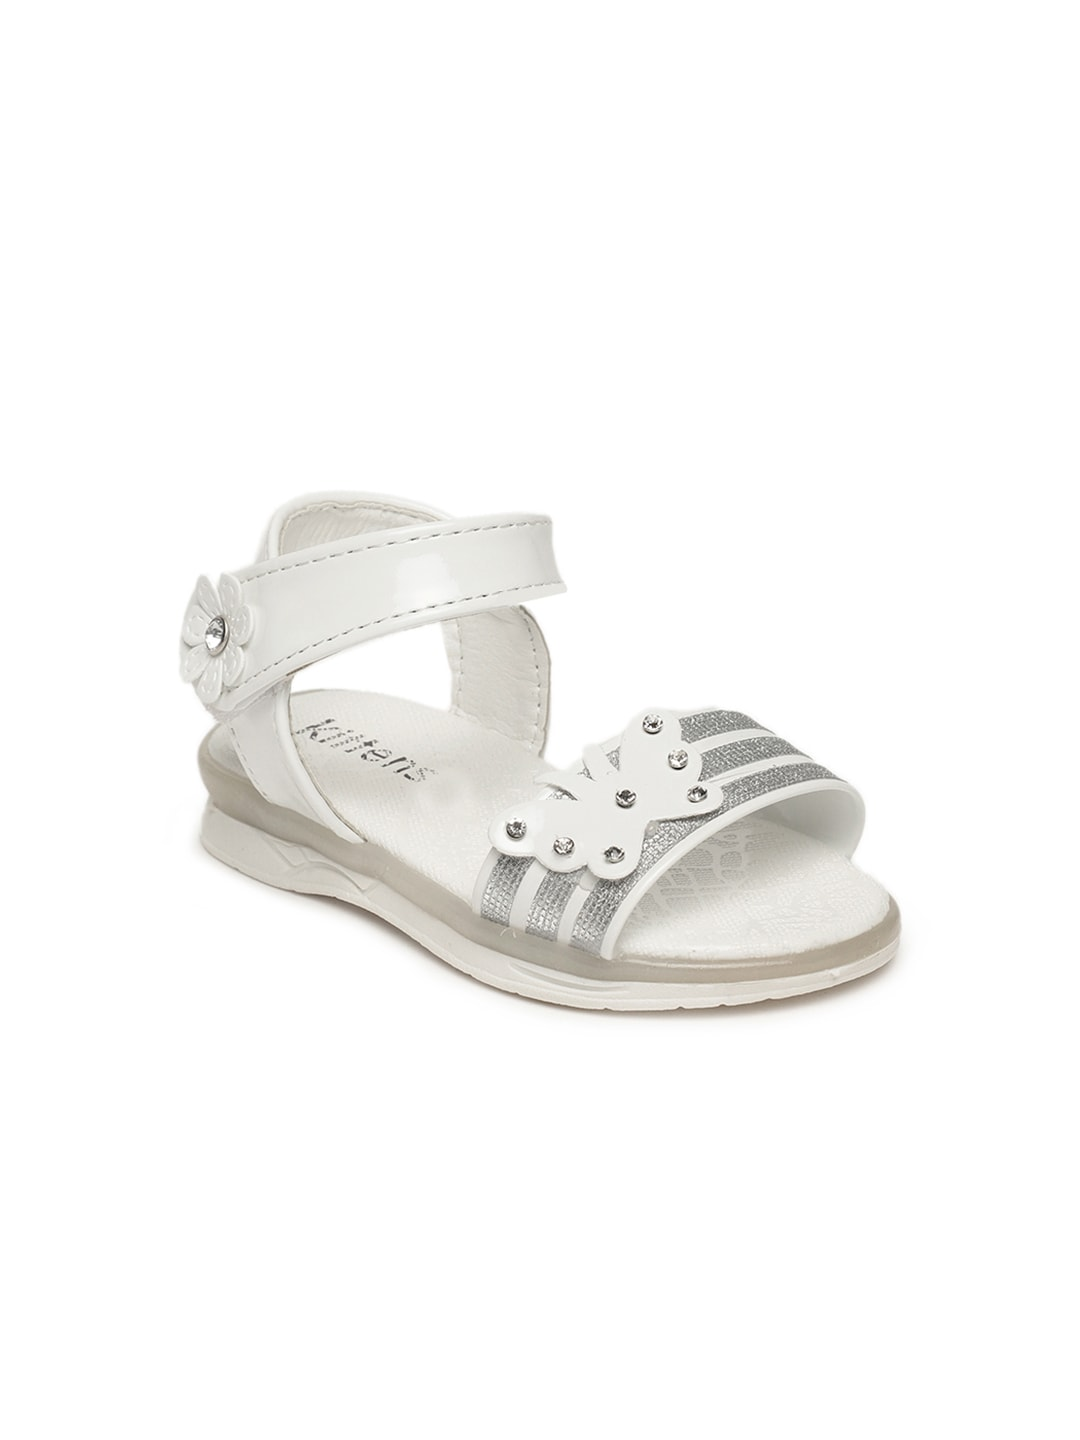 beca3592d57245 White Sandals - Buy White Sandals Online in India